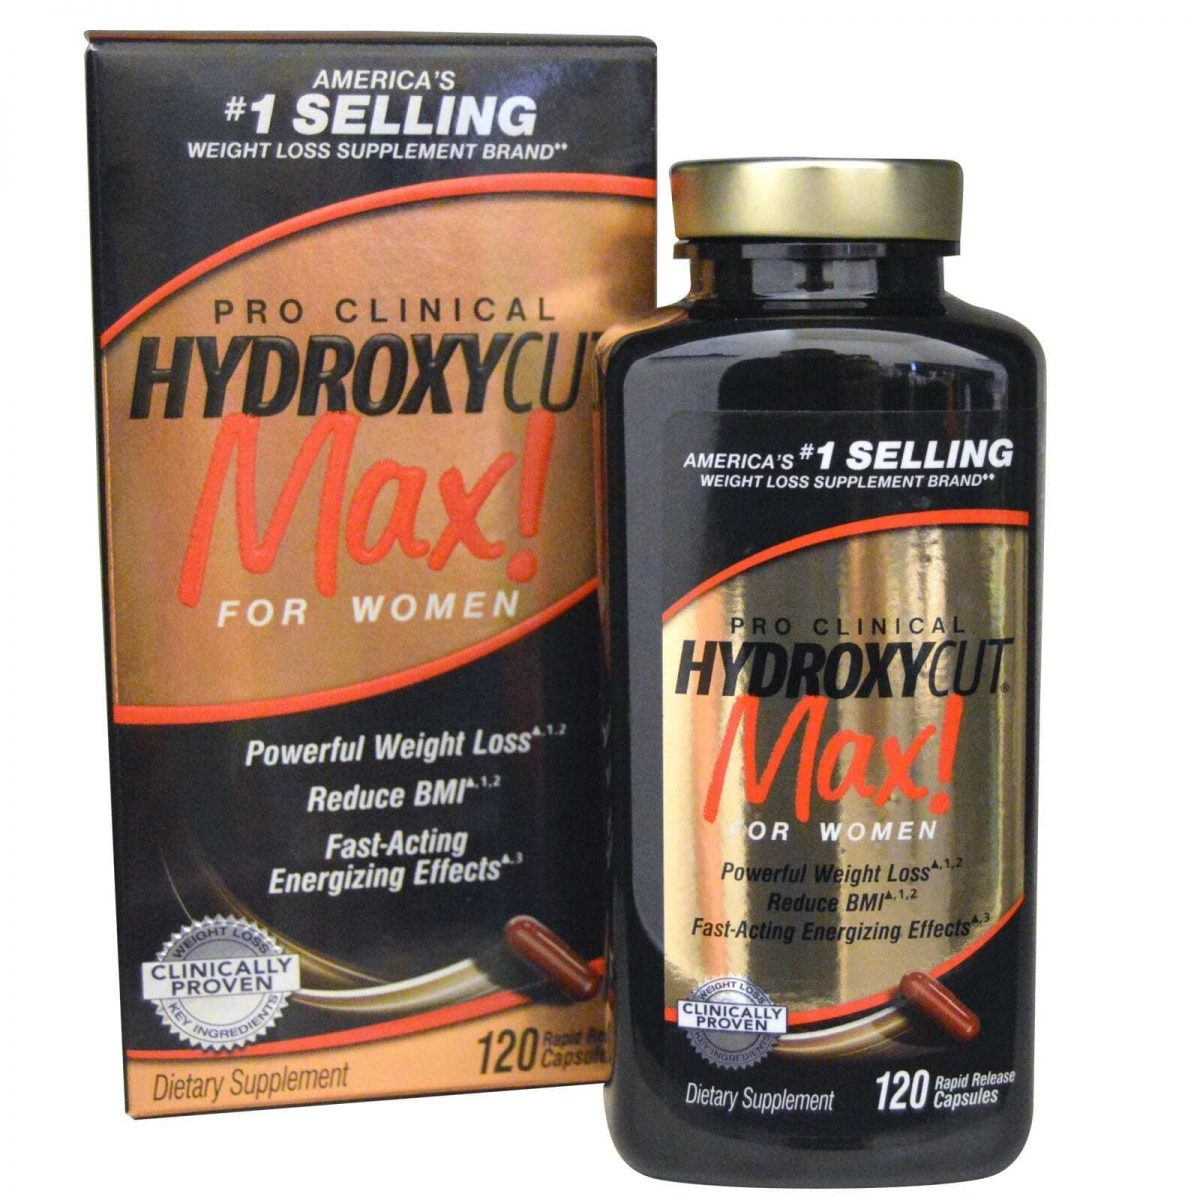 Hydroxycut Max for Women - 120 Capsules-0